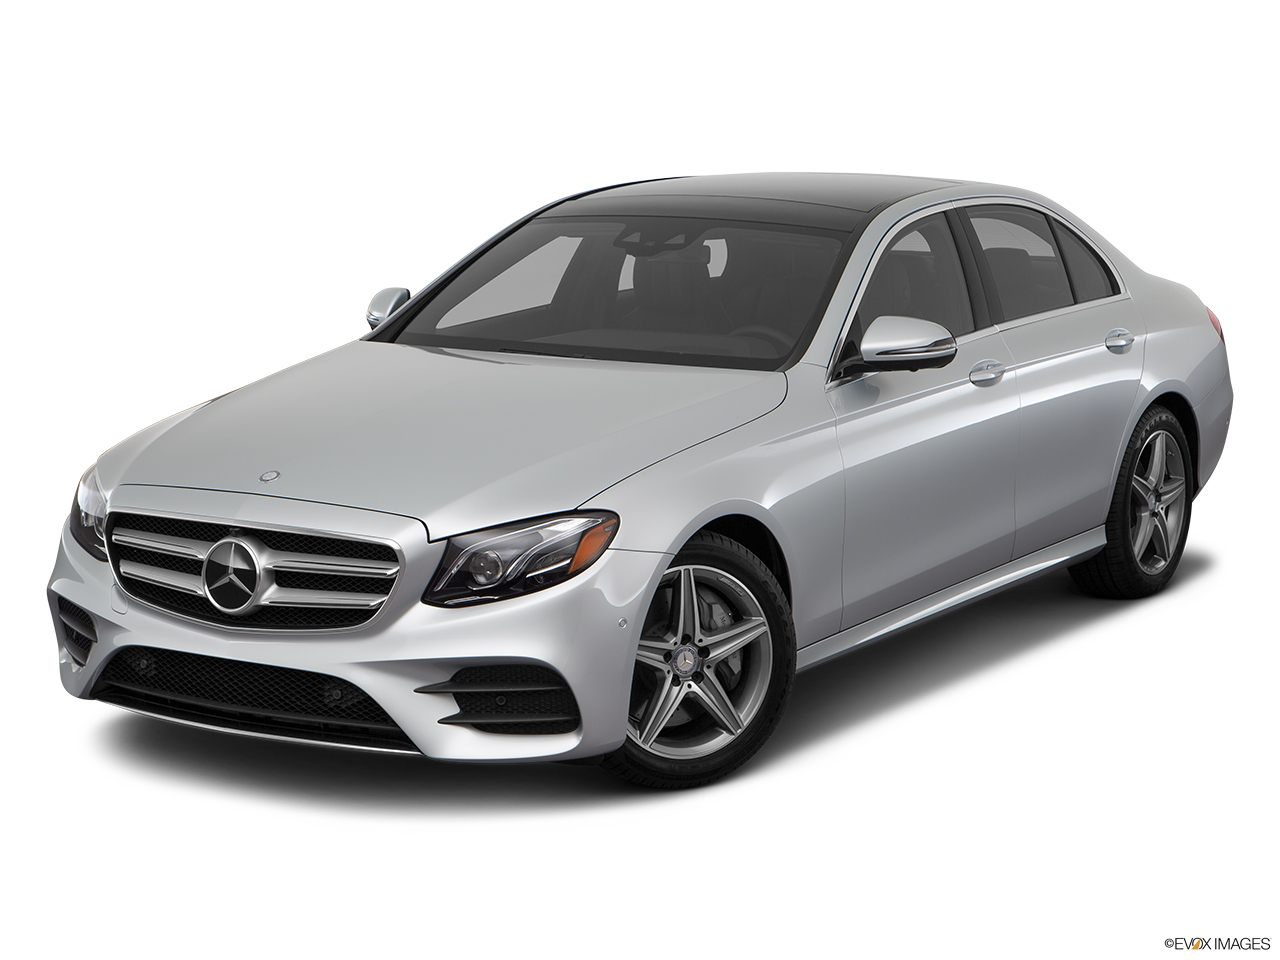 mercedes benz e class saloon price in egypt new mercedes benz e class saloon photos and specs. Black Bedroom Furniture Sets. Home Design Ideas